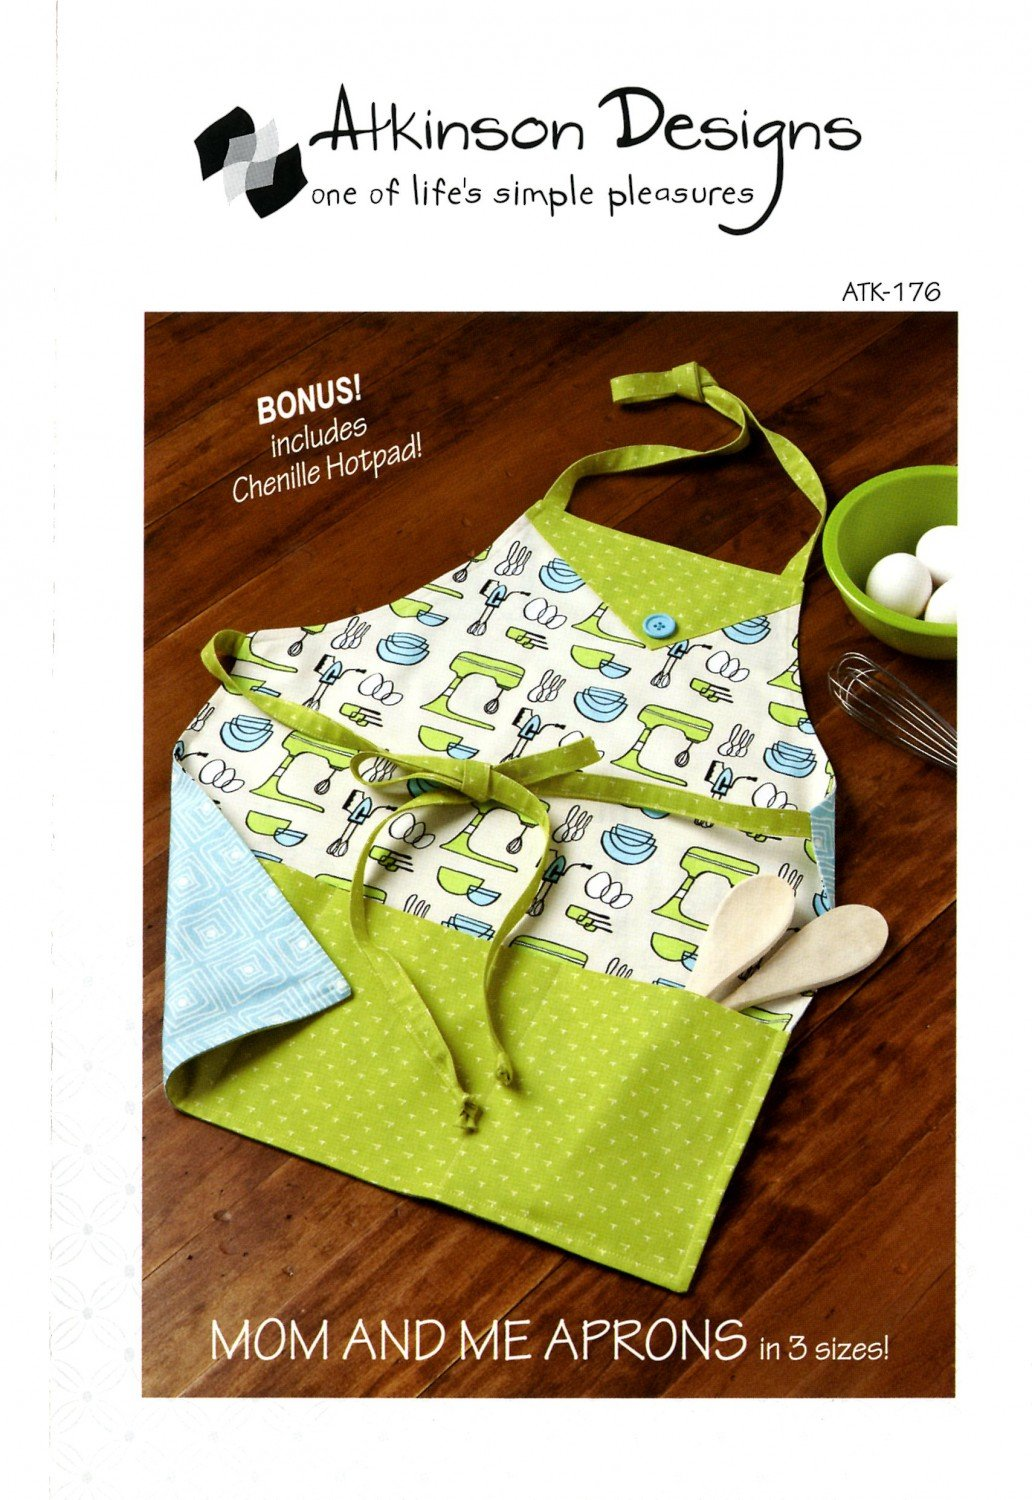 Mom And Me Apron by Atkinson Designs